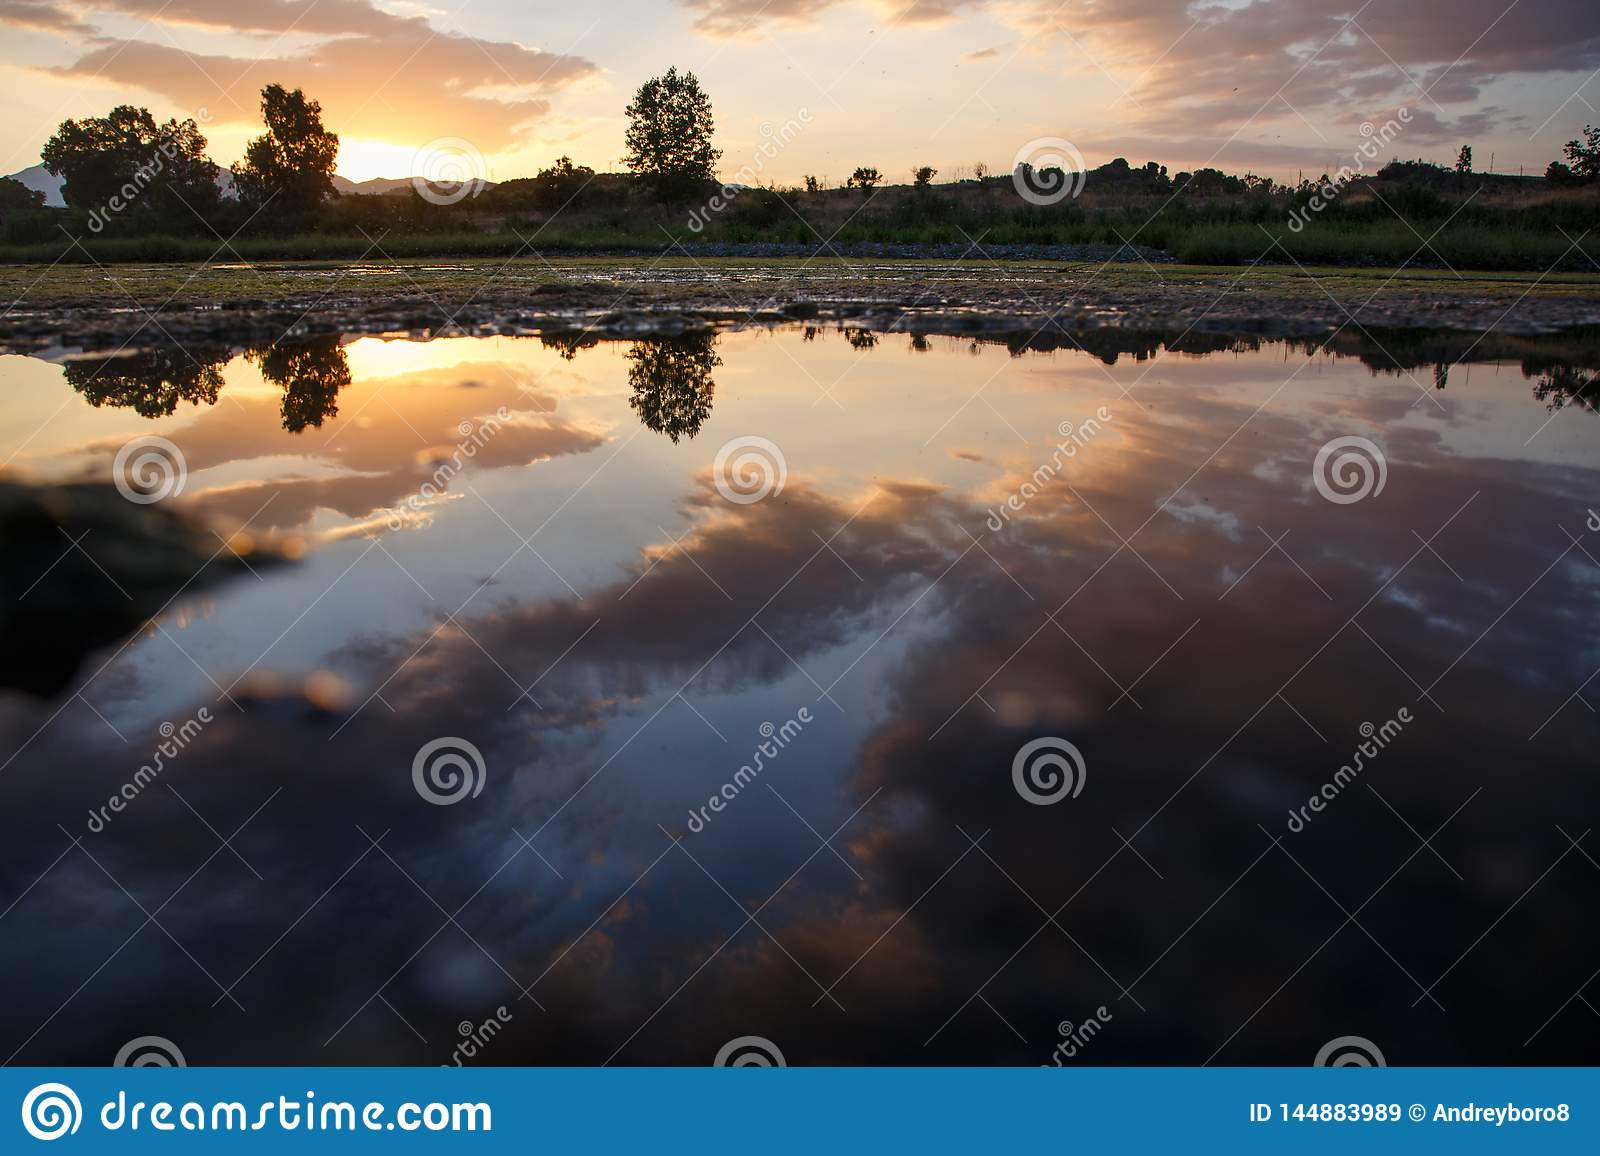 Sunset with clouds reflected on the water of a lake